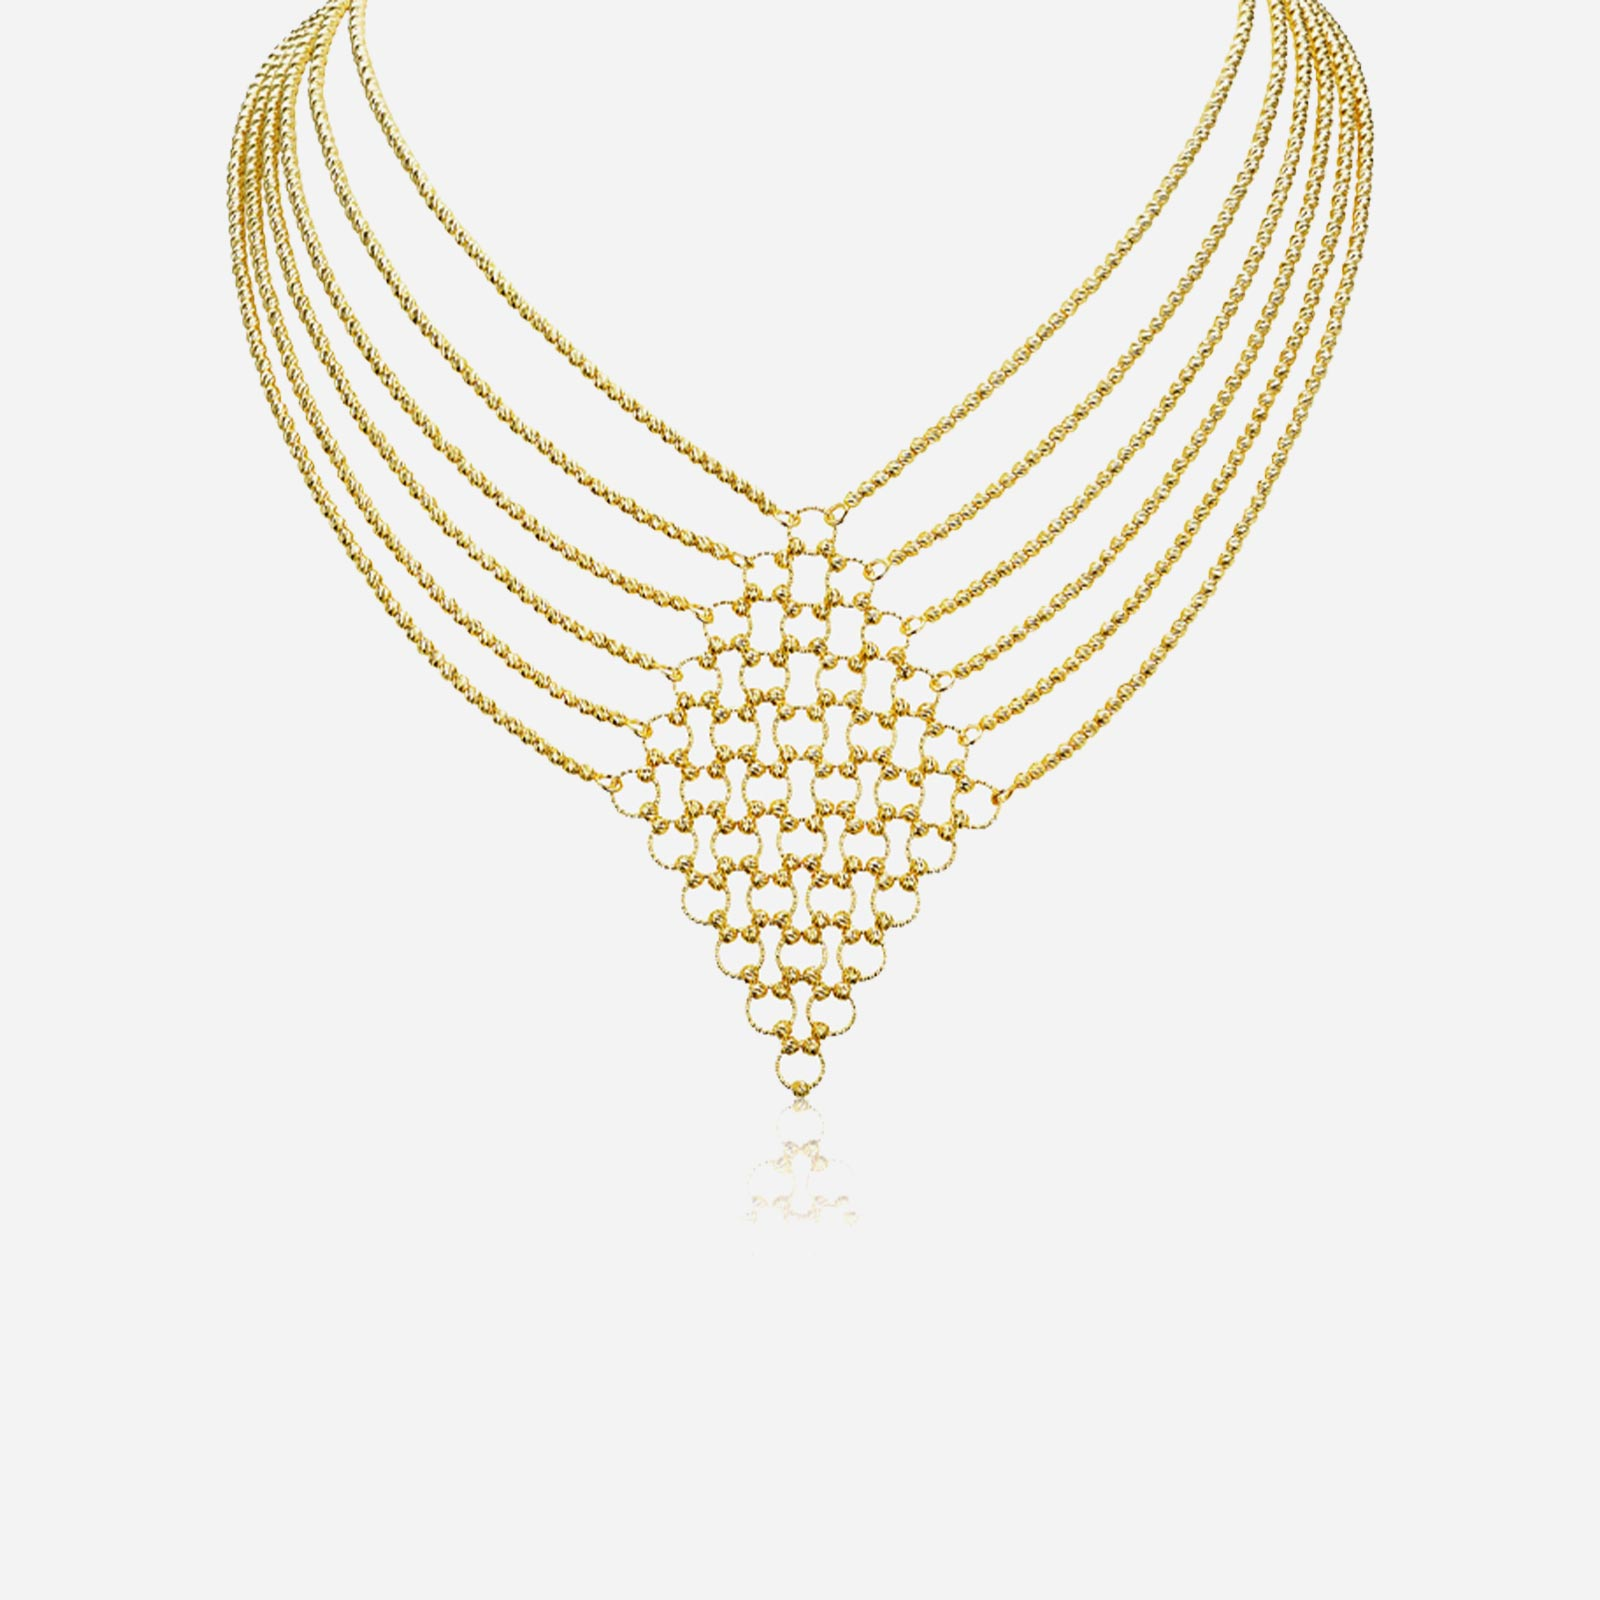 The Lady – Her Class Necklace